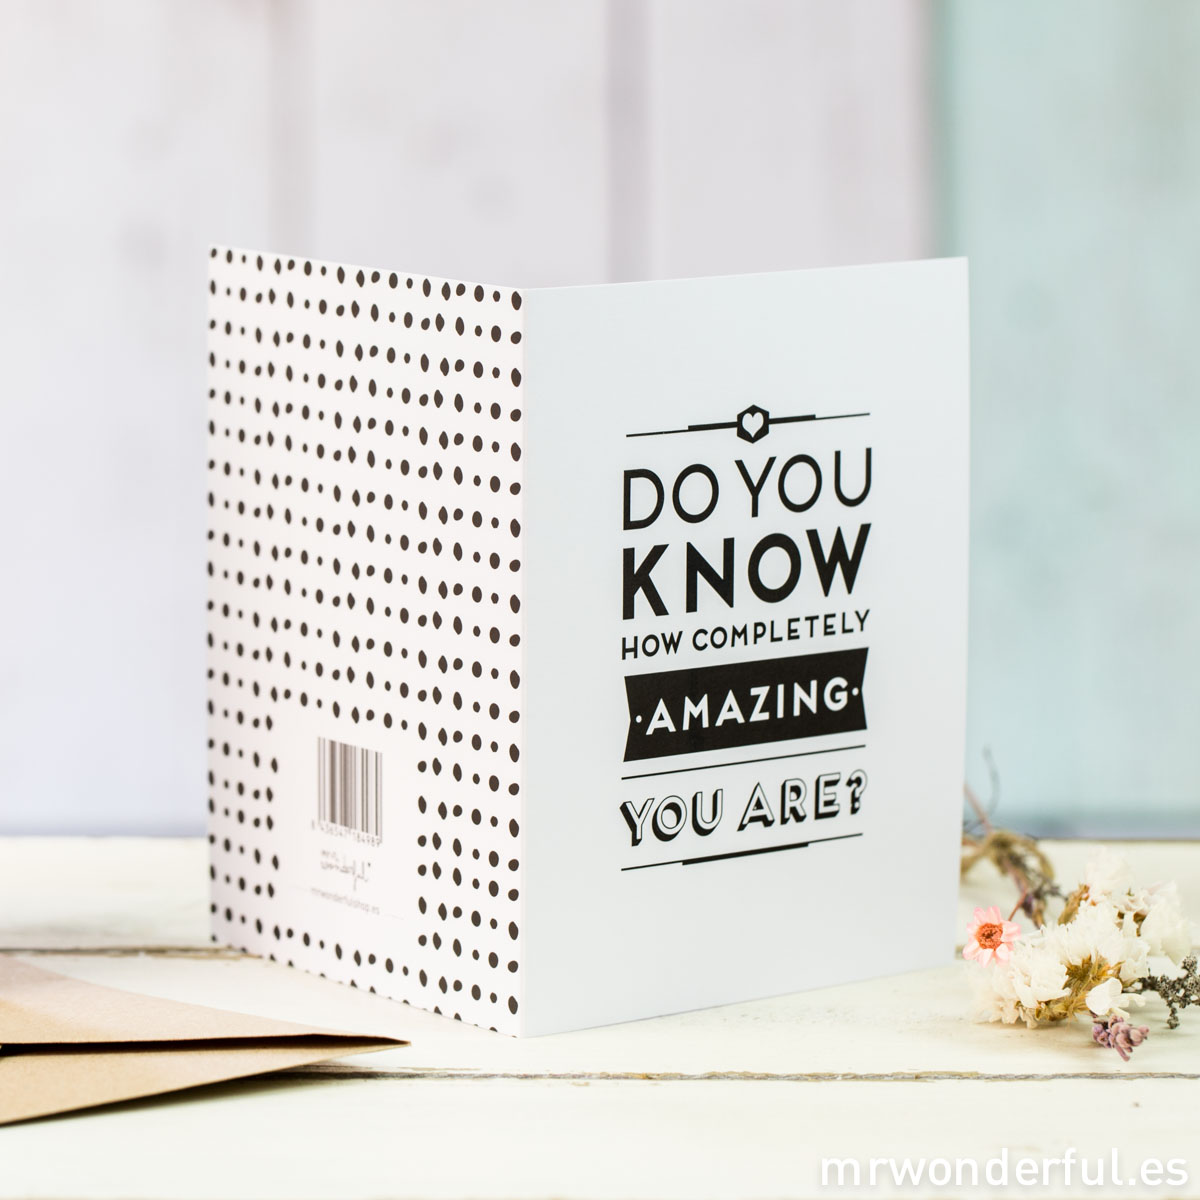 mrwonderful_felicitacion-13_pack-5-tarjetas-relieve_do-you-know-amazing-you-ENG-10